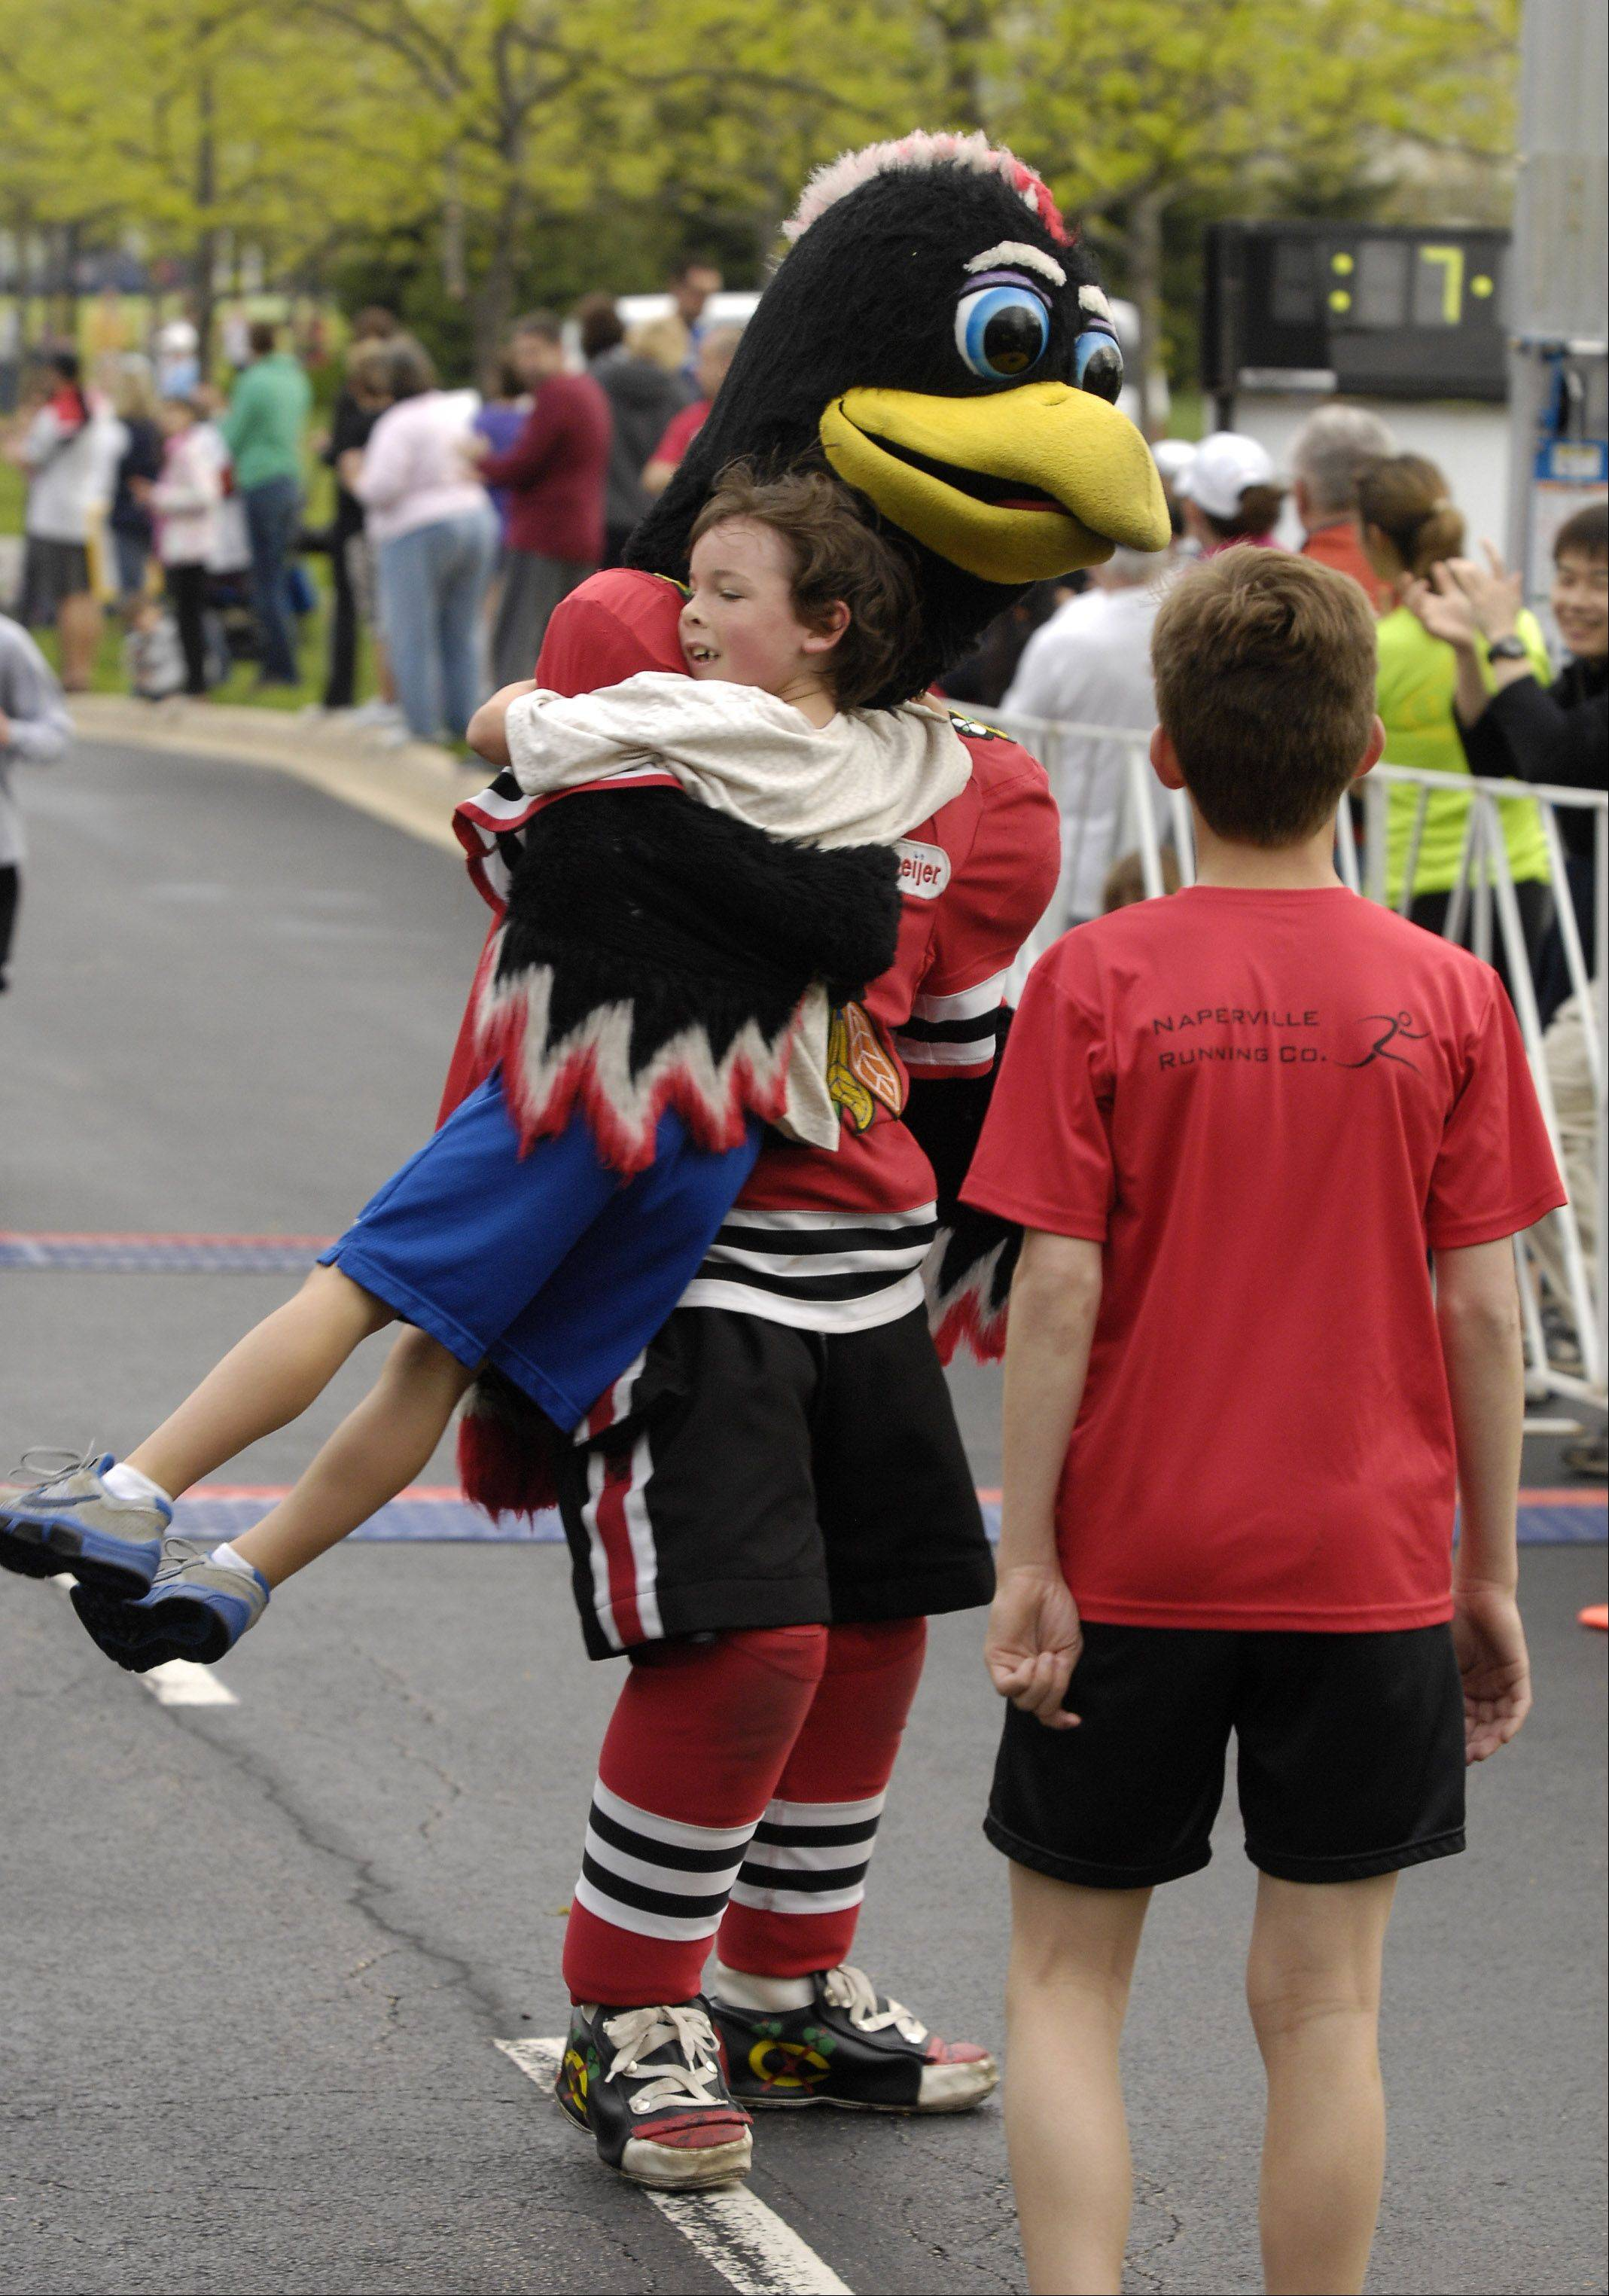 "Liam Cahill, 7 of Naperville places 3rd in the children's race and get spinning hug from Chicago Blackhawks mascot ""Tommy Hawk"" as he crosses the finish line, during the 360 Youth Services� Spring Ahead Run at the Calamos Corporate Campus in Naperville, Sunday."